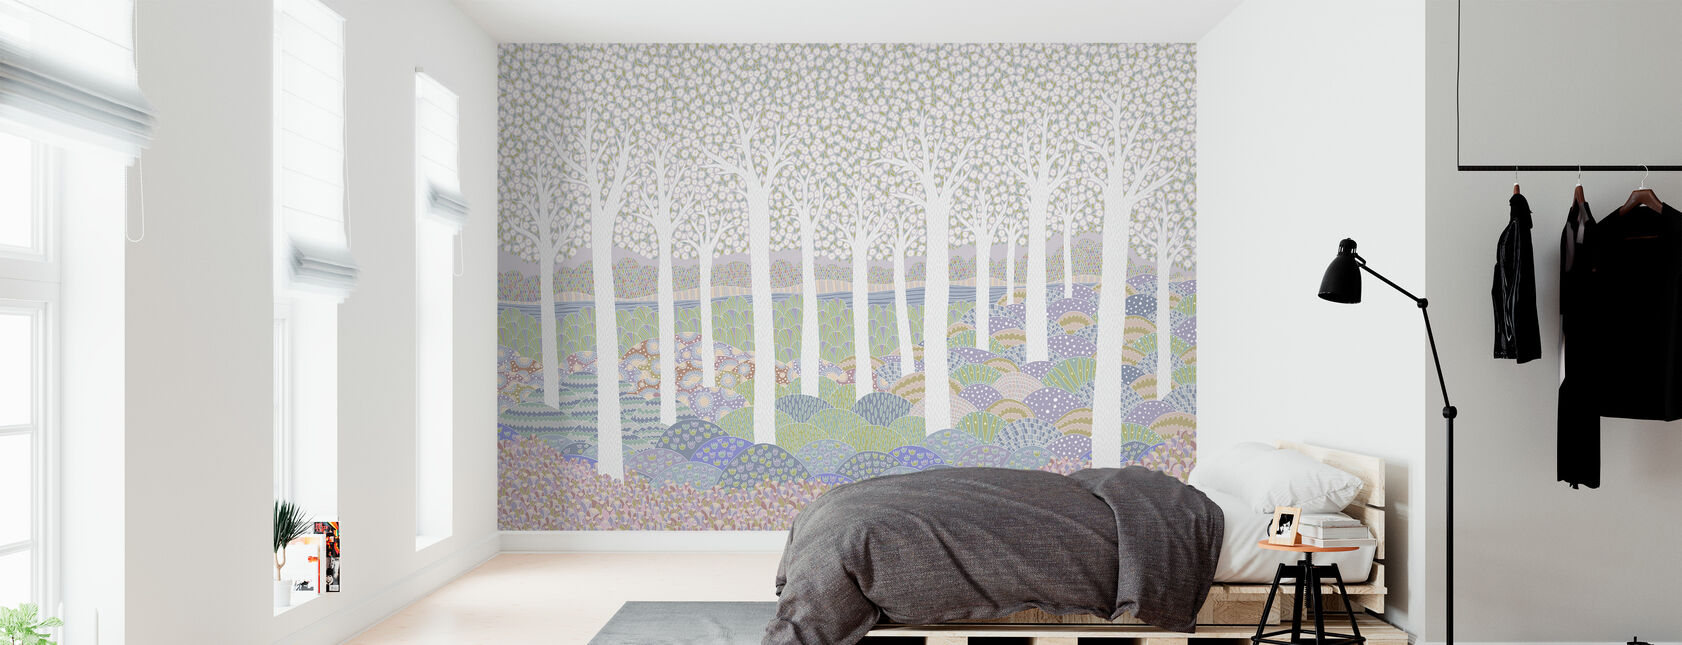 Flower Forest - Wallpaper - Bedroom